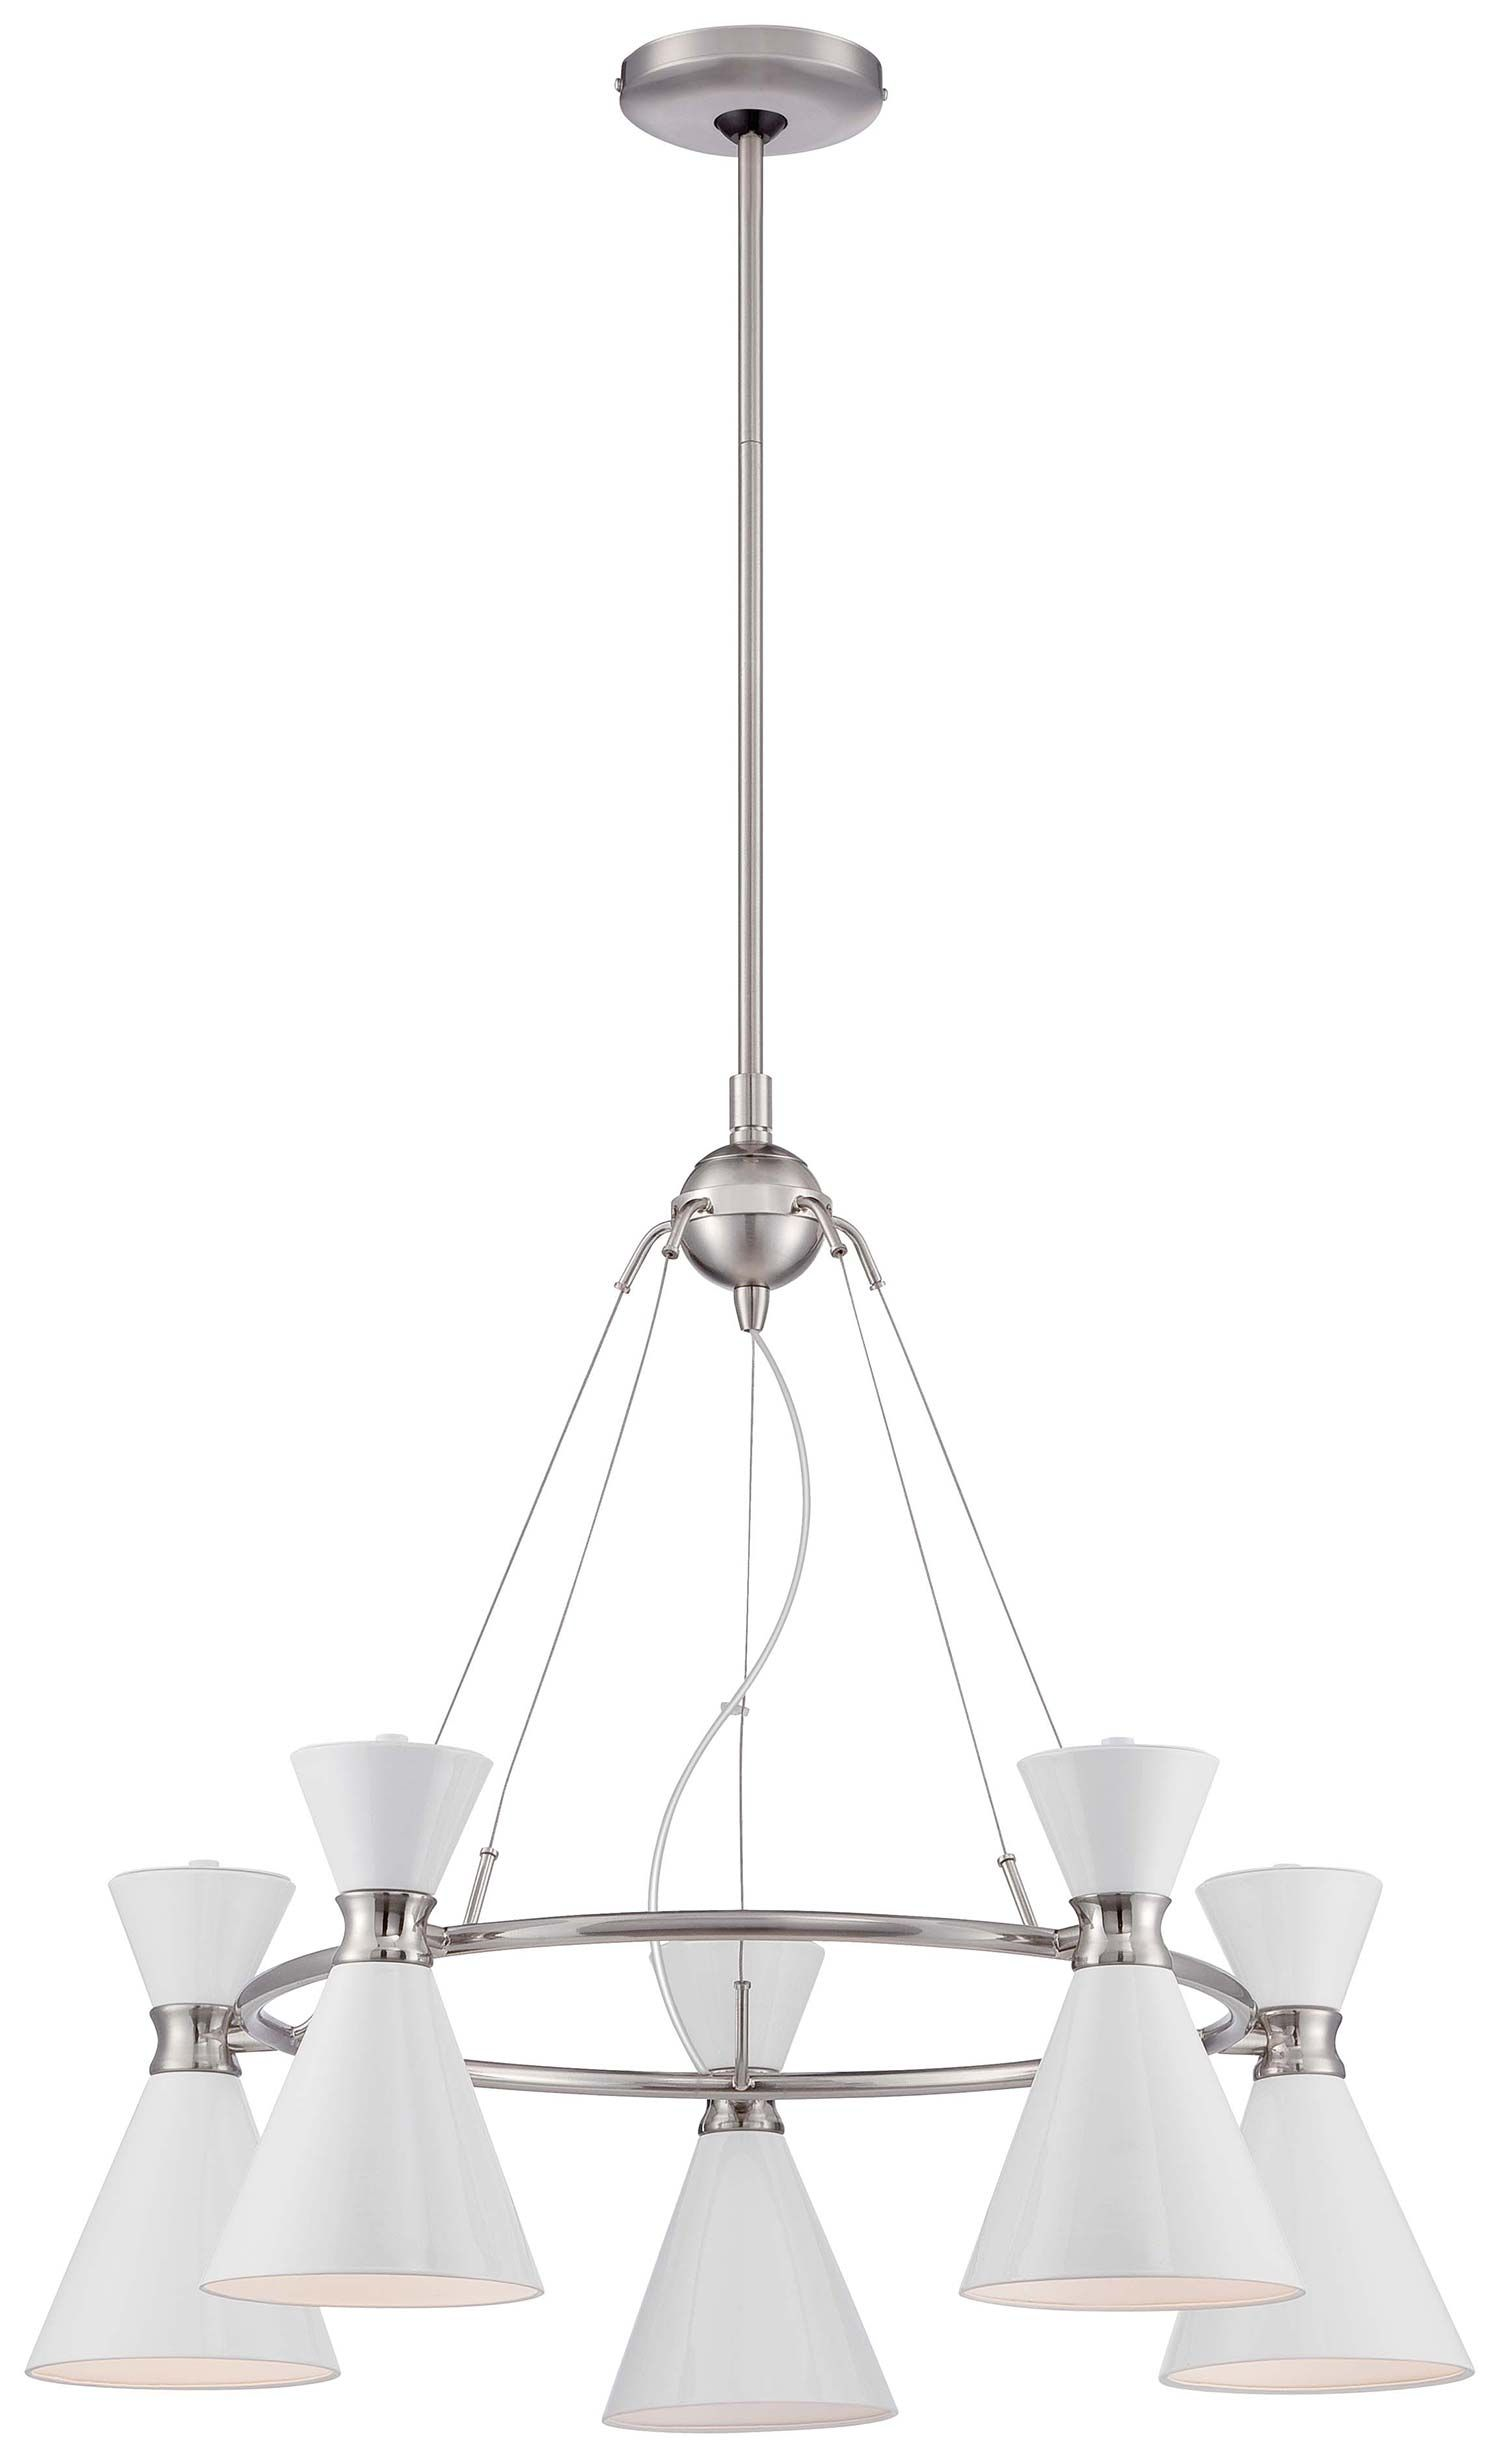 George Kovacs Lighting Conic Chandelier Anj